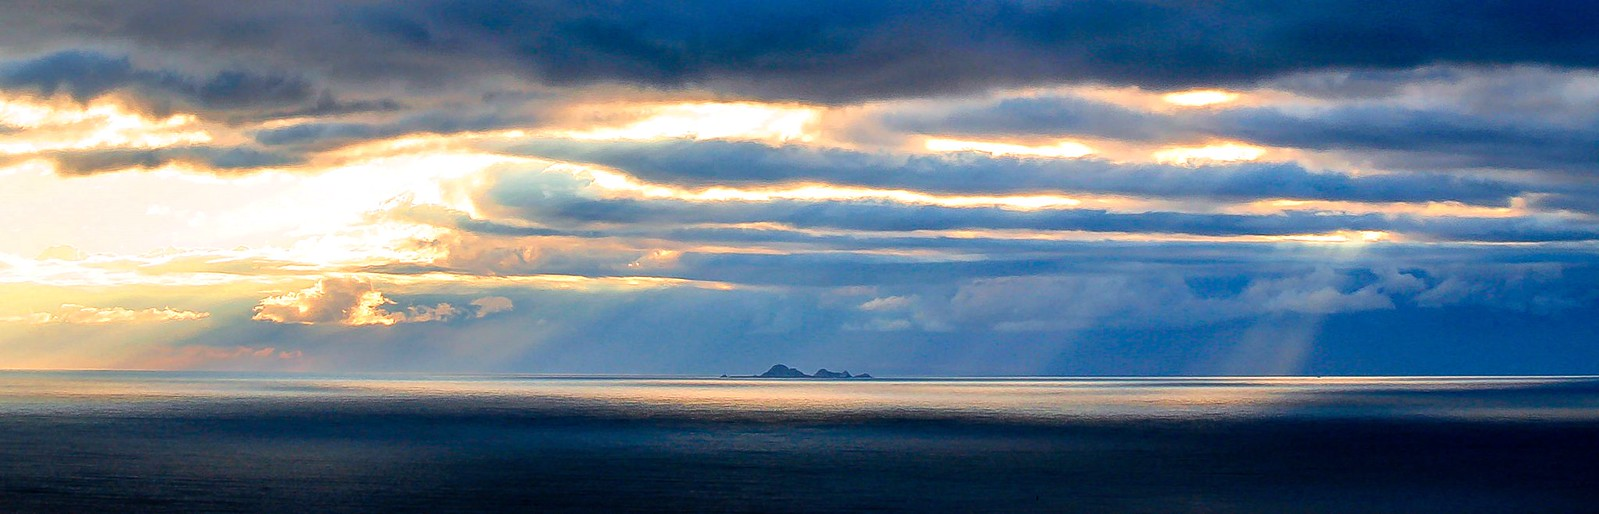 Dramatic Sky Over the Farallones